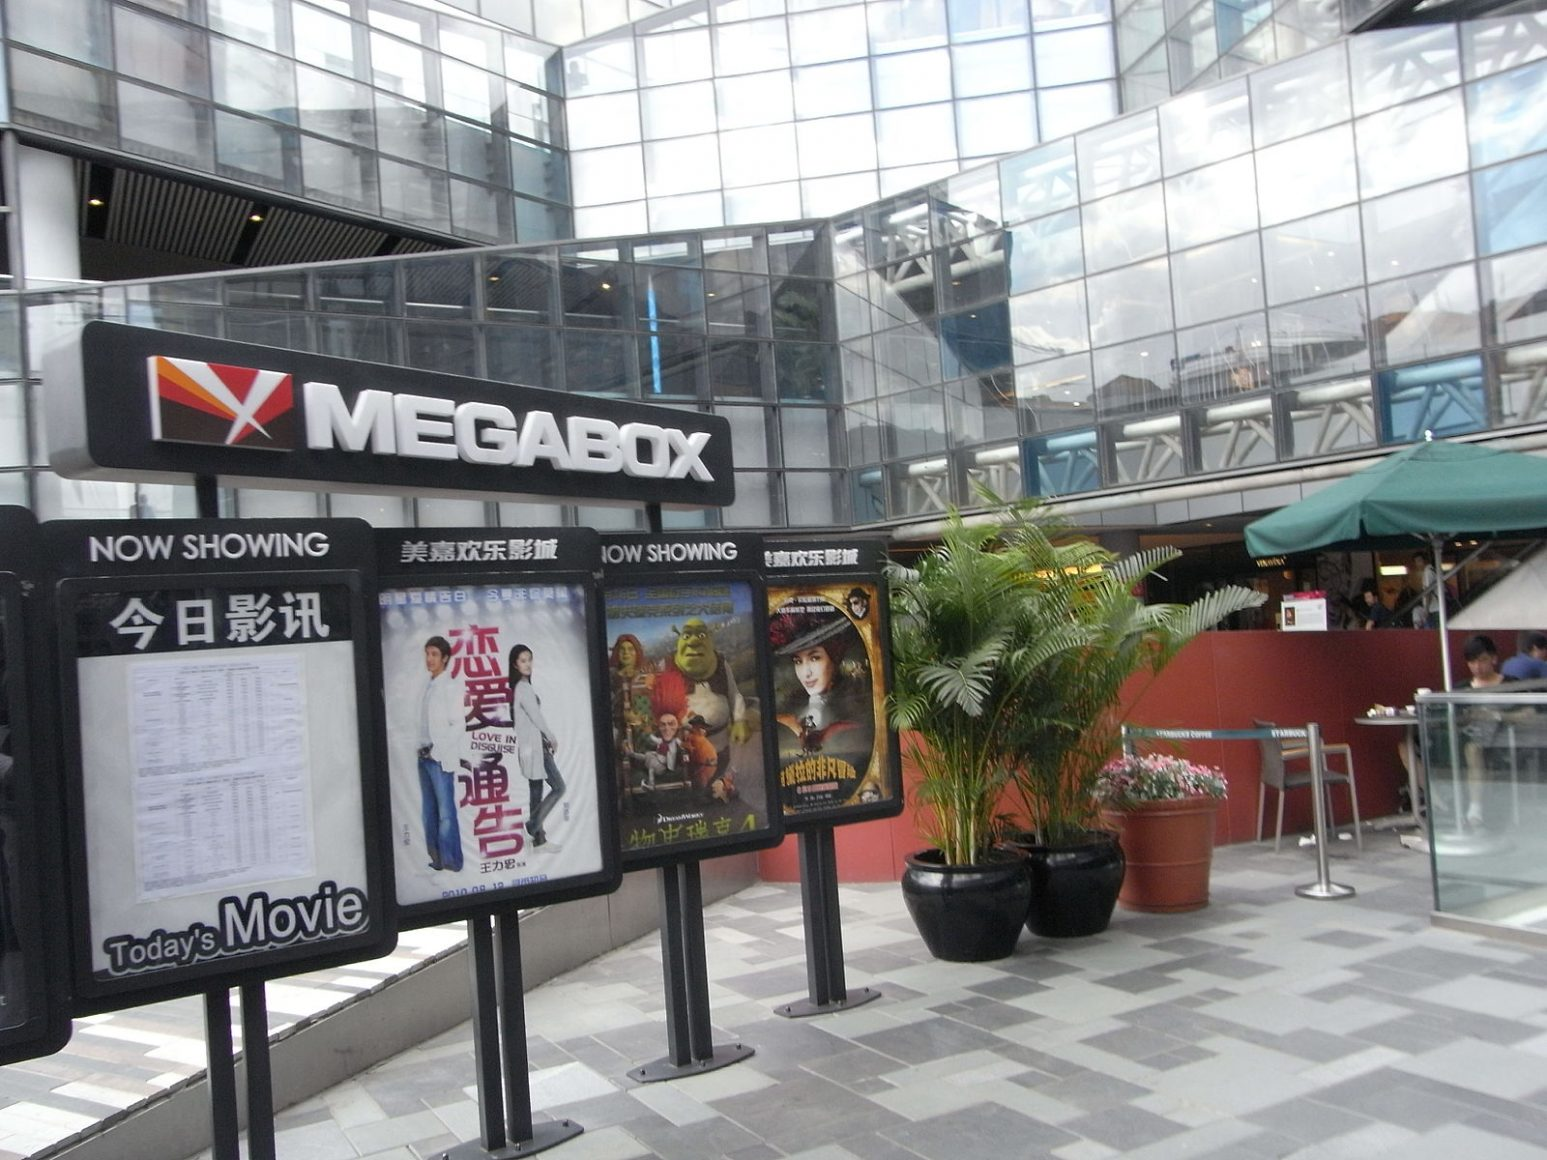 Movie posters at the entrance of a Megabox theater in Beijing